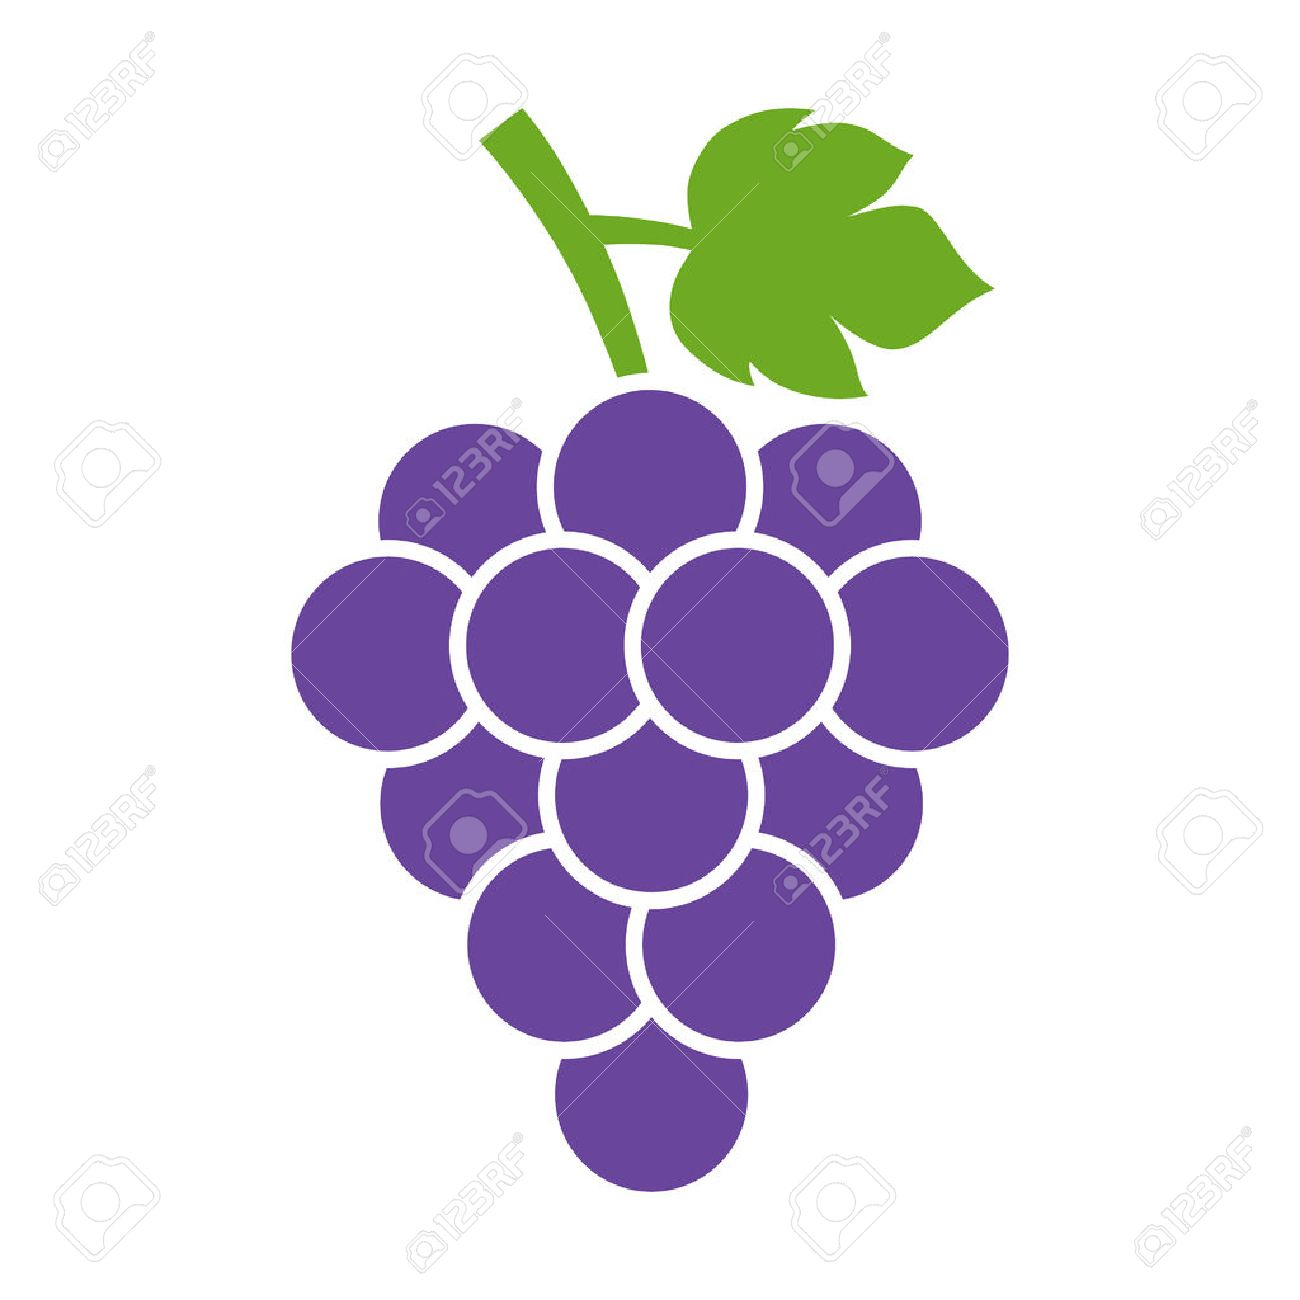 Bunch of wine grapes with leaf flat color icon for food apps and websites - 50897107